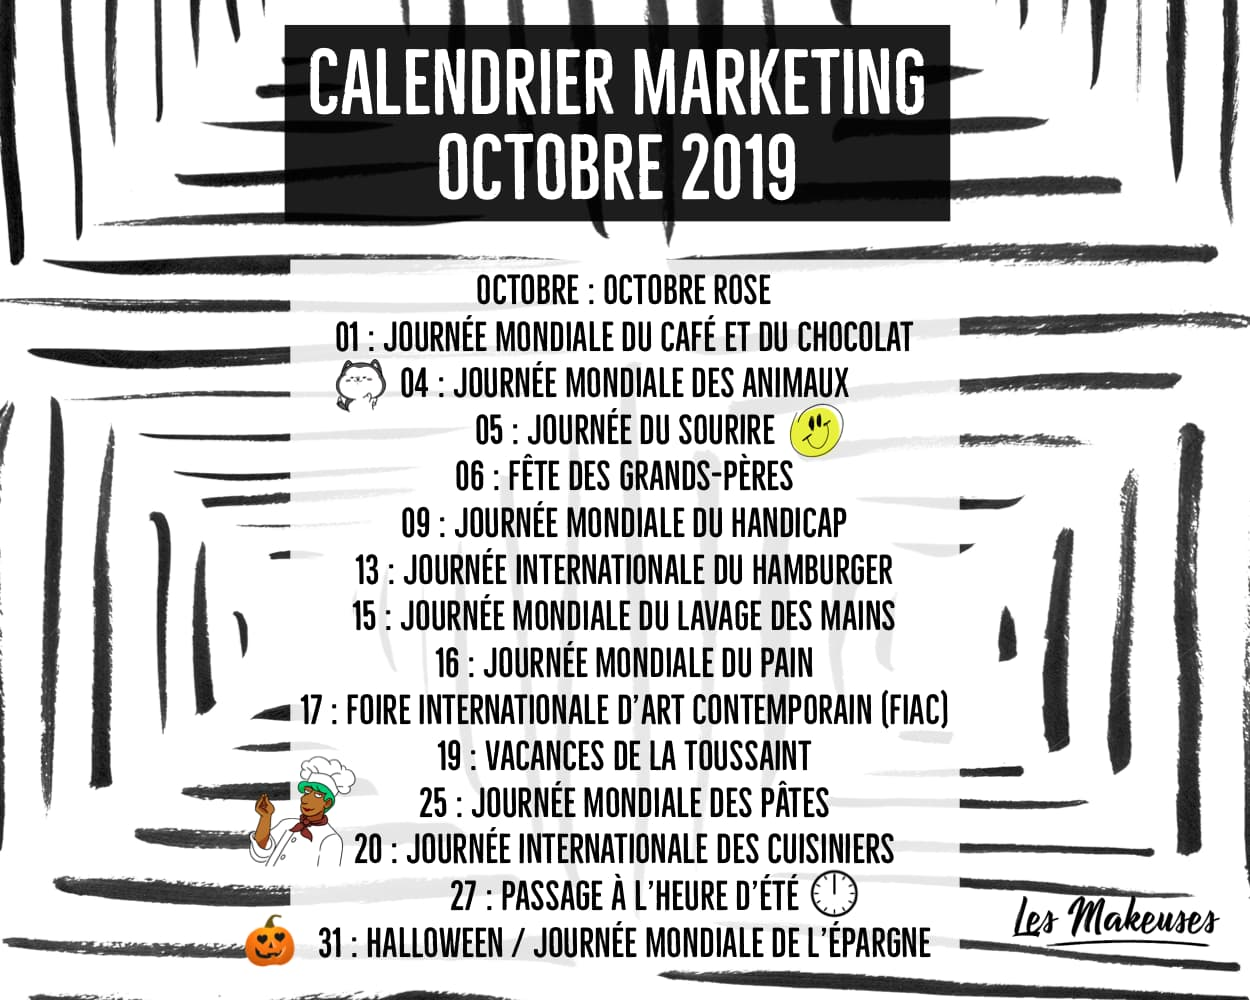 Calendrier Marketing Octobre 2019